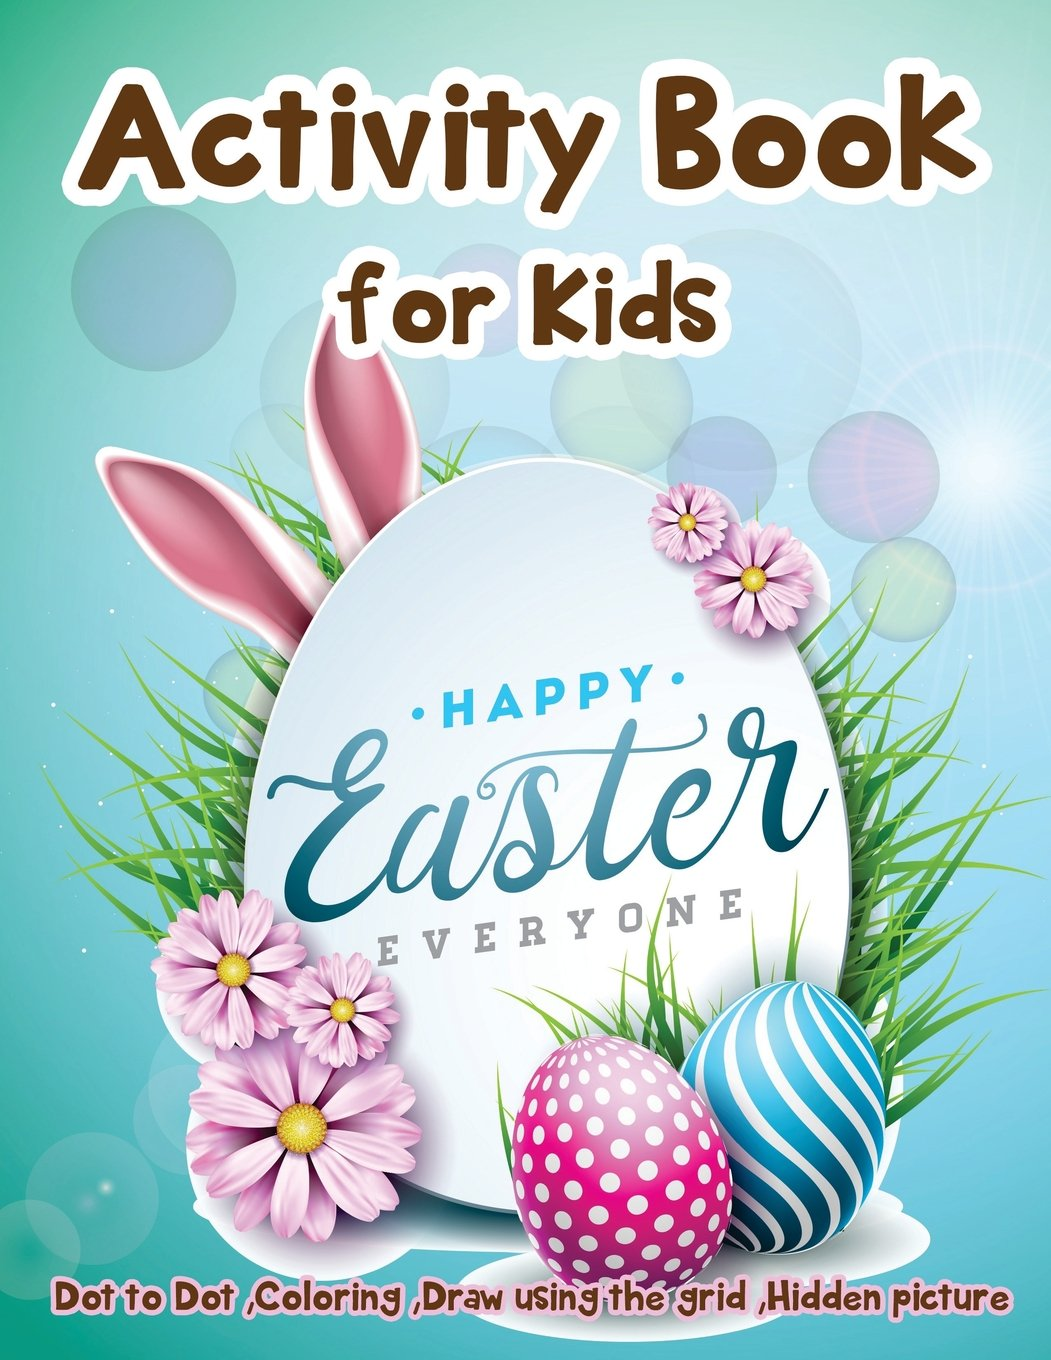 Activity Book for Kids - Happy Easter Everyone: Dot to Dot, Coloring ,Draw using the Grid, Hidden picture pdf